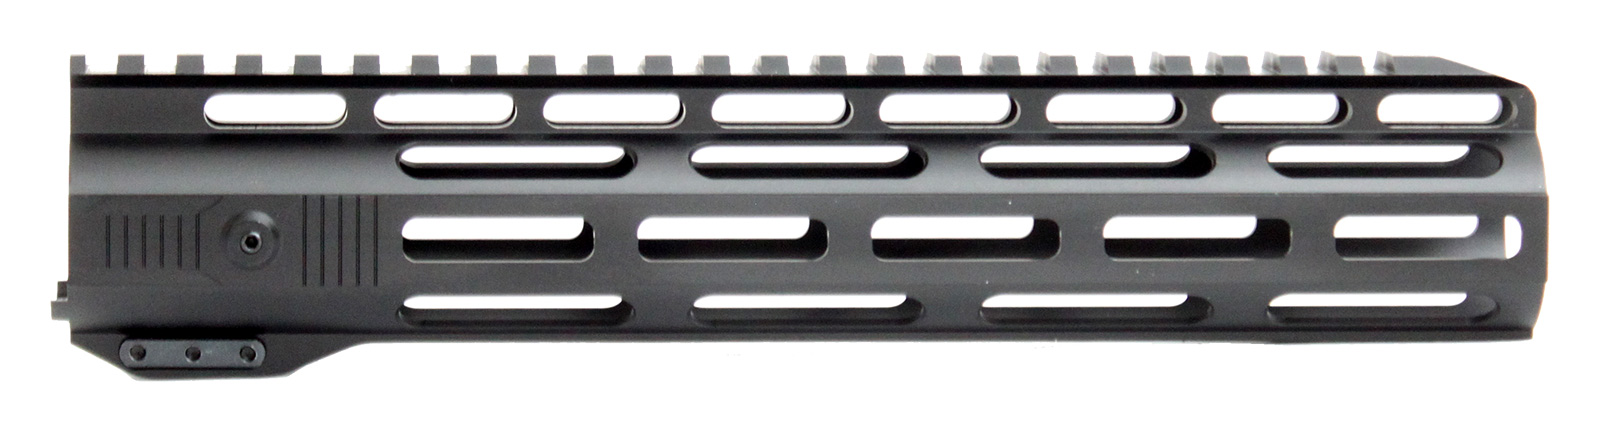 ar15-rail-9-inch-slim-free-float-m-lok-120109